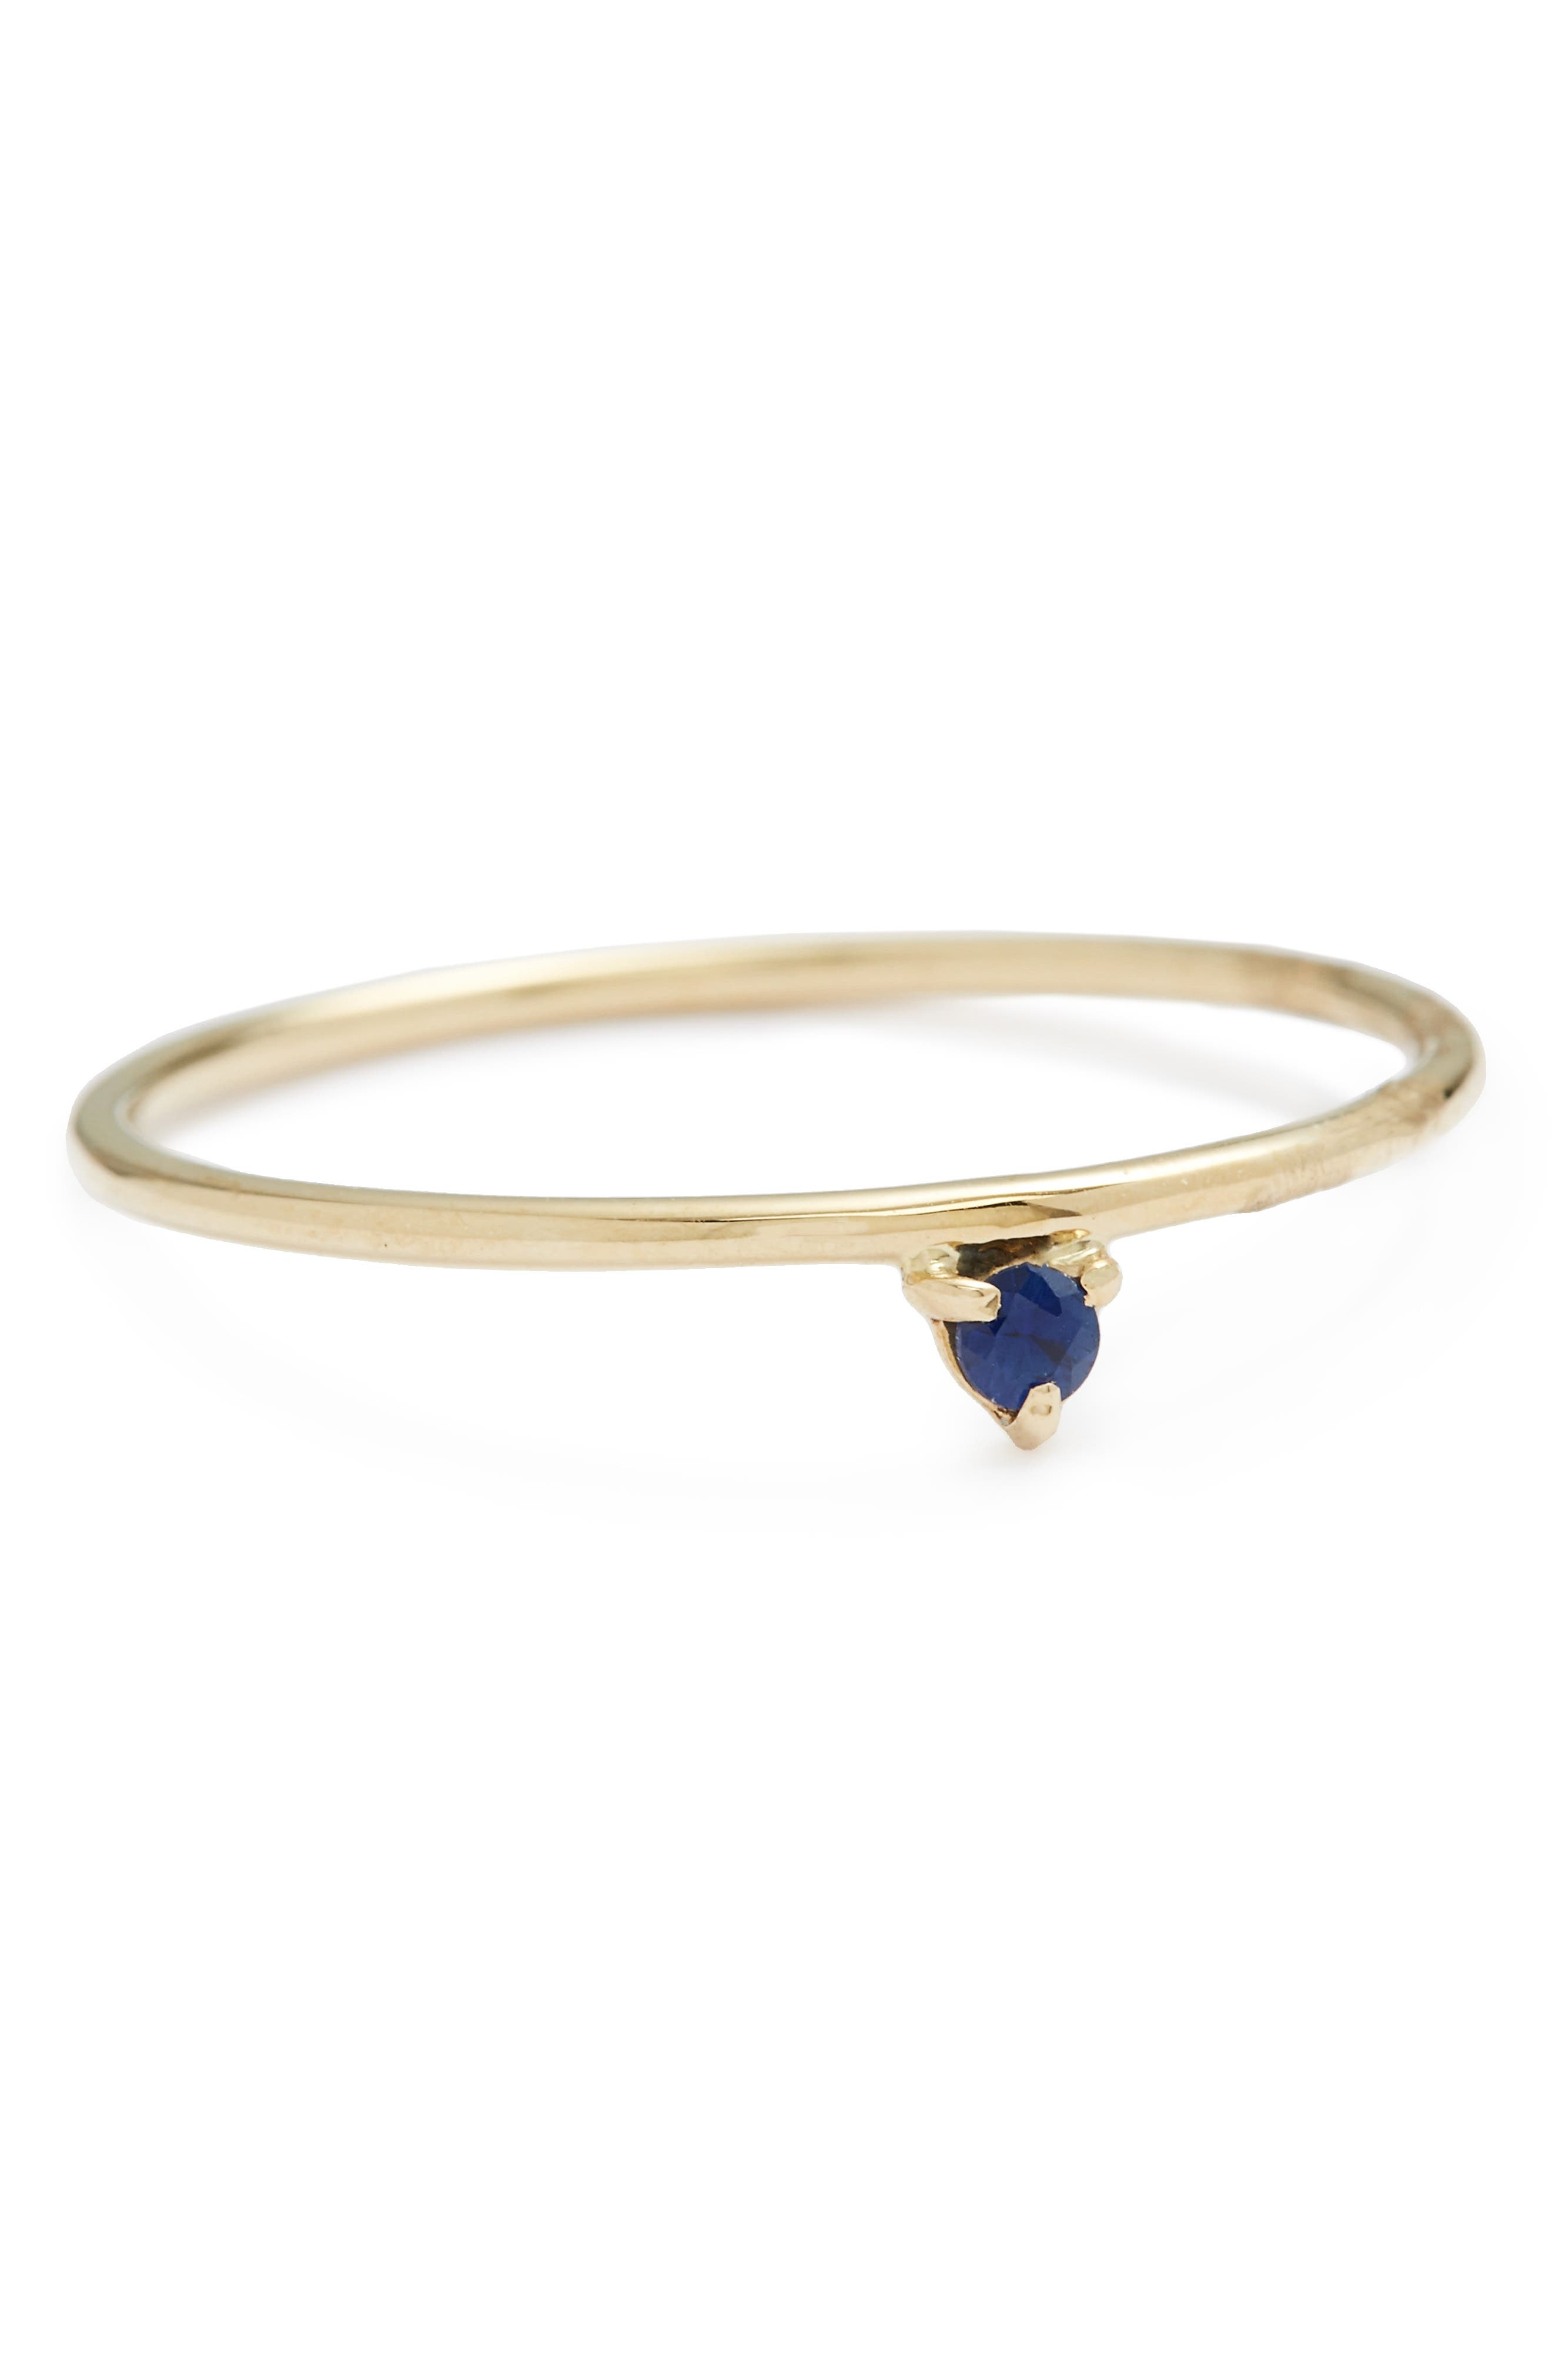 One Step Ring,                             Main thumbnail 1, color,                             YELLOW GOLD